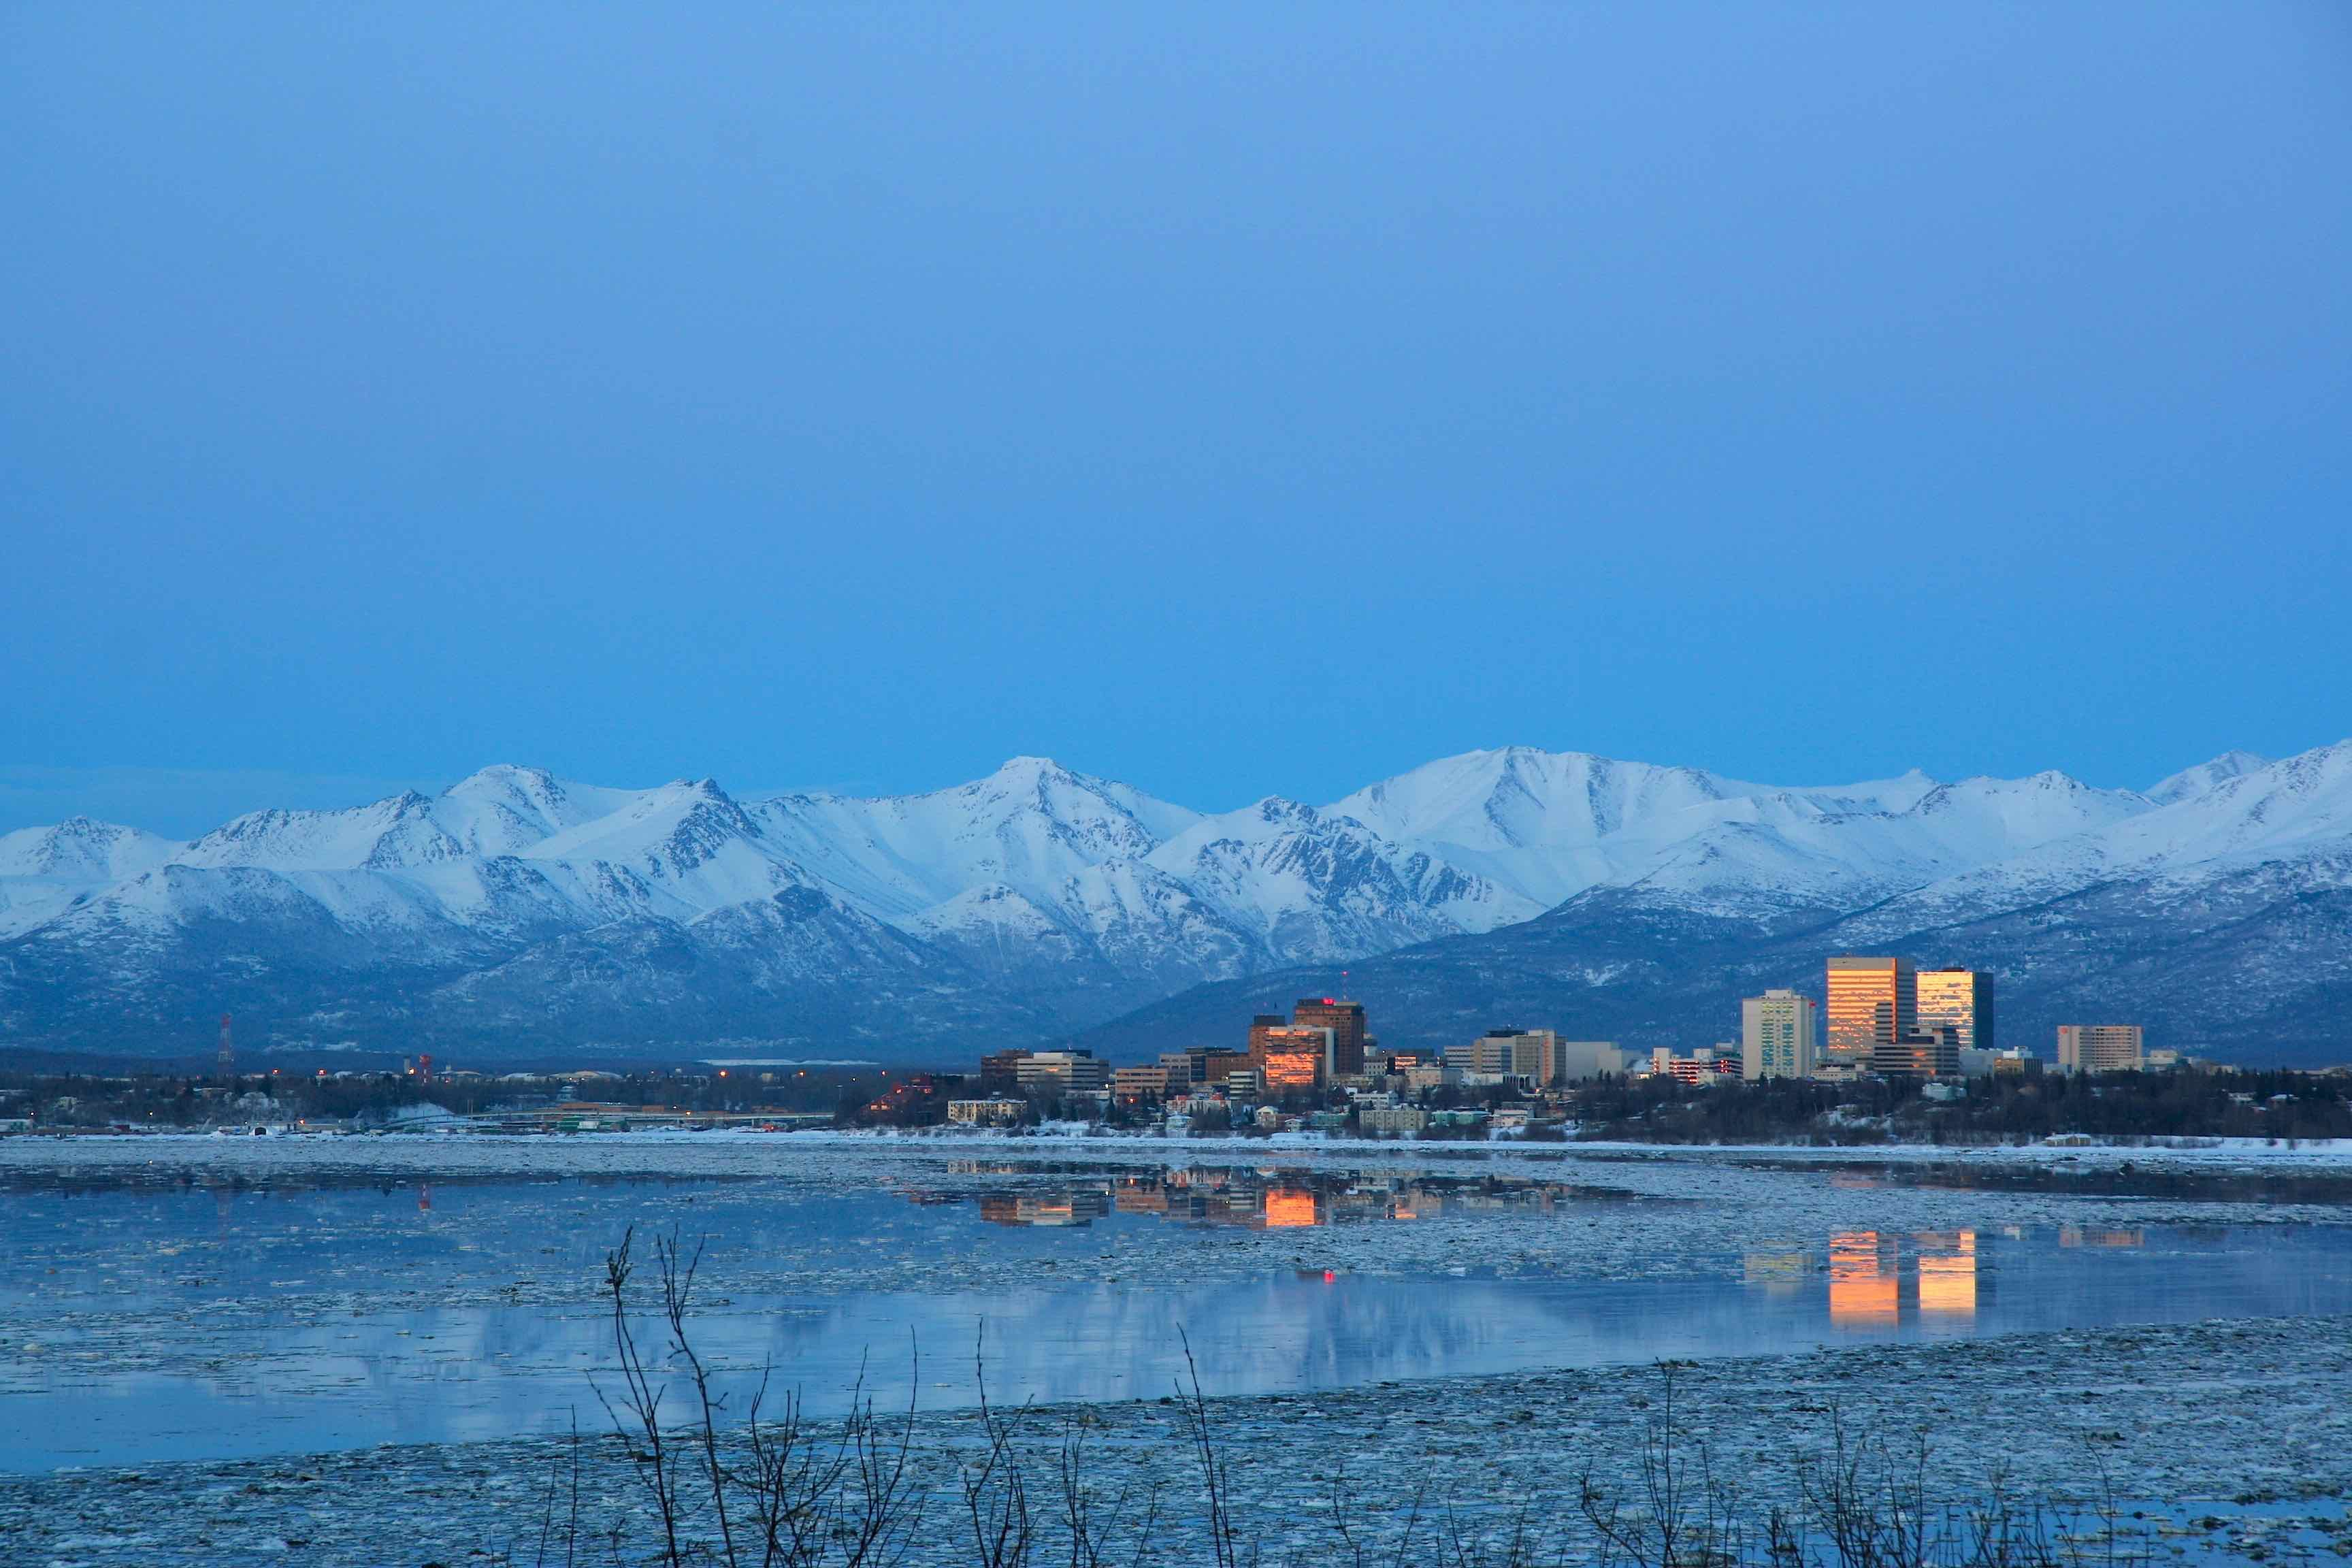 View of Anchorage skyline from water.